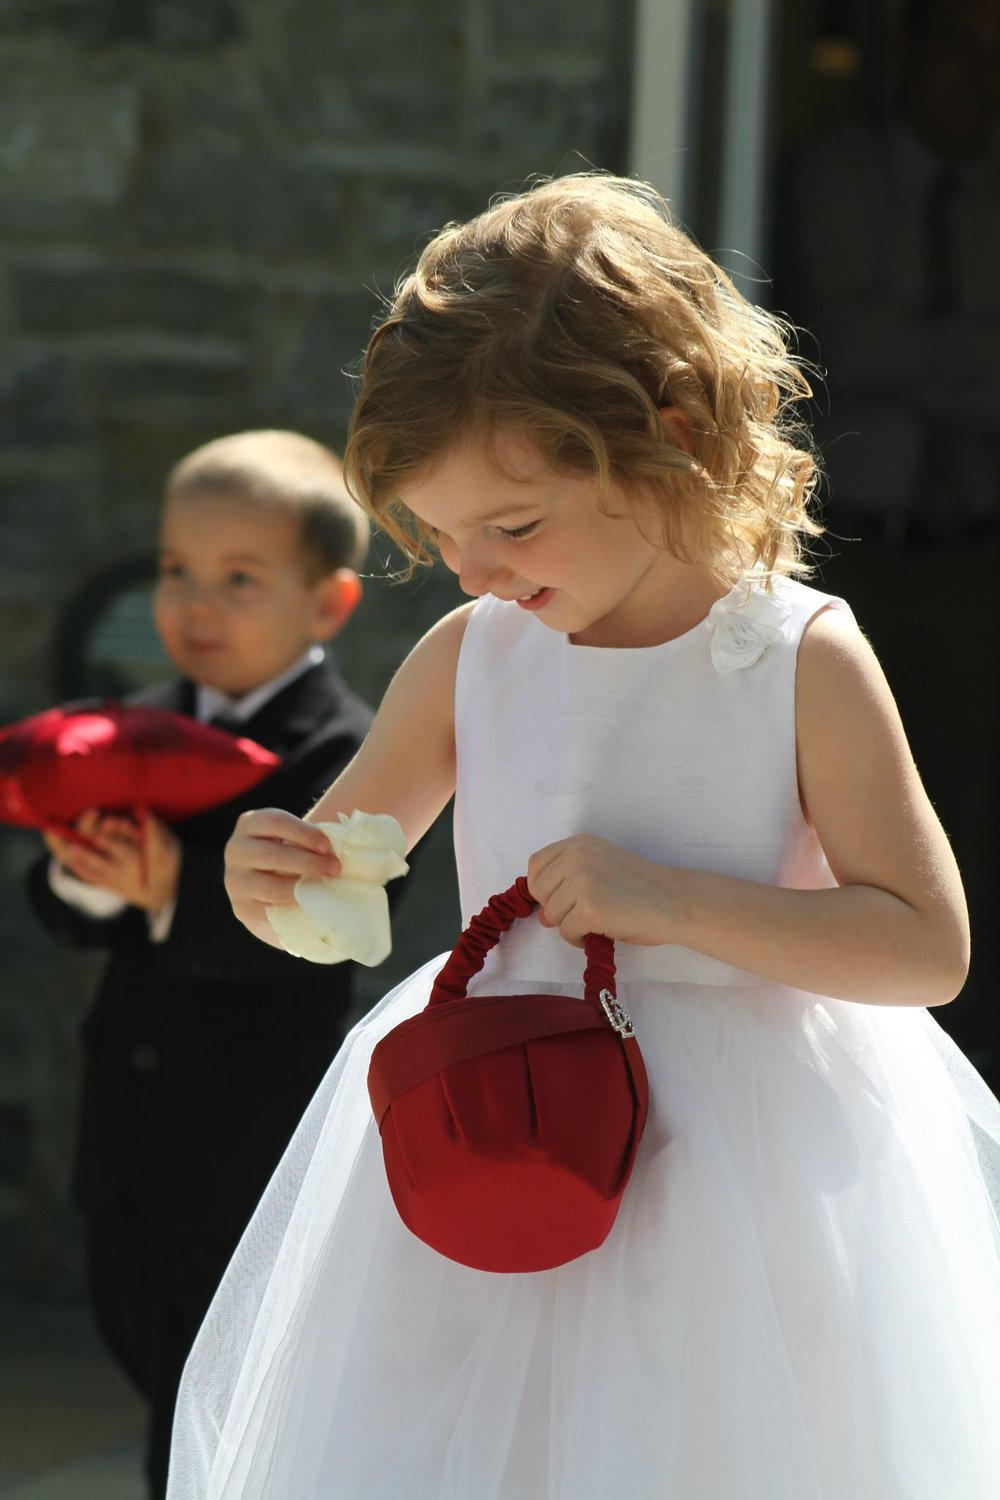 Fascinated flower girl enjoys Kendra and Nathan's wedding in Columbus Ohio while officiant Damian awaits bride's entrance